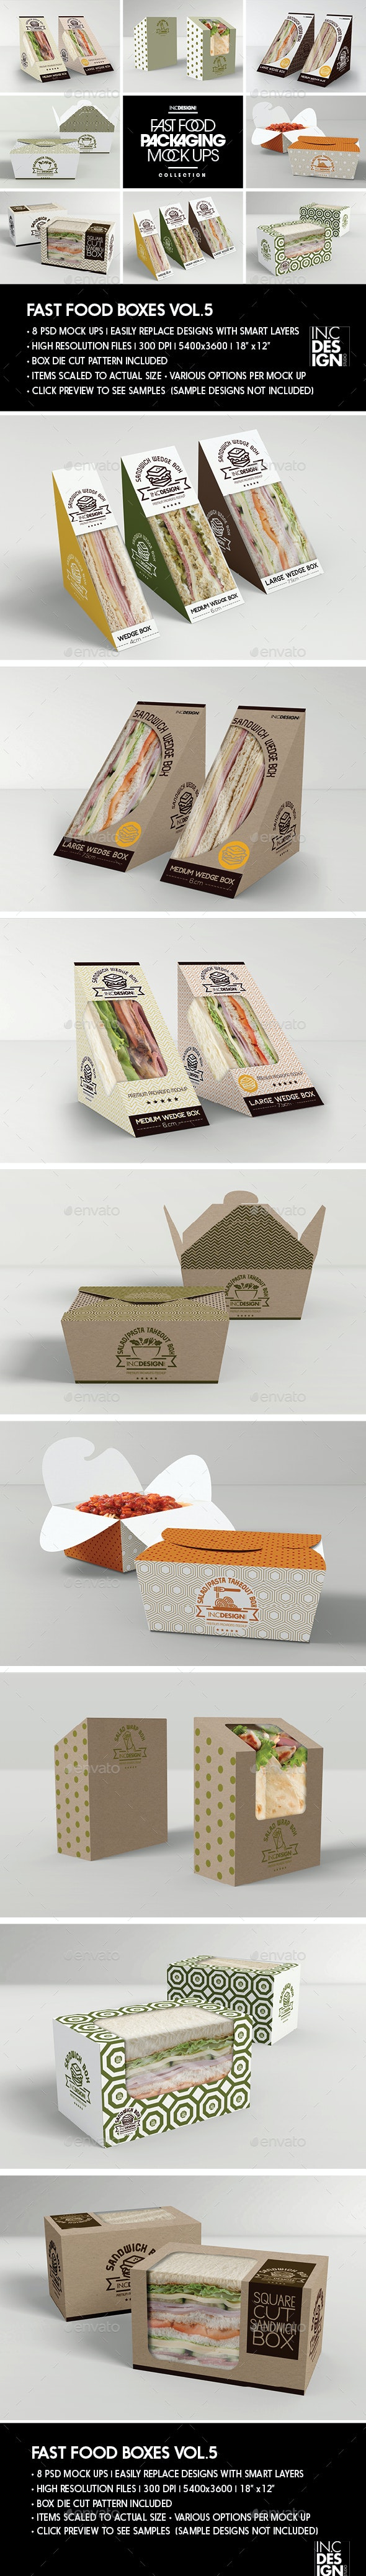 Fast Food Boxes Vol.5:Take Out Packaging Mock Ups - Food and Drink Packaging